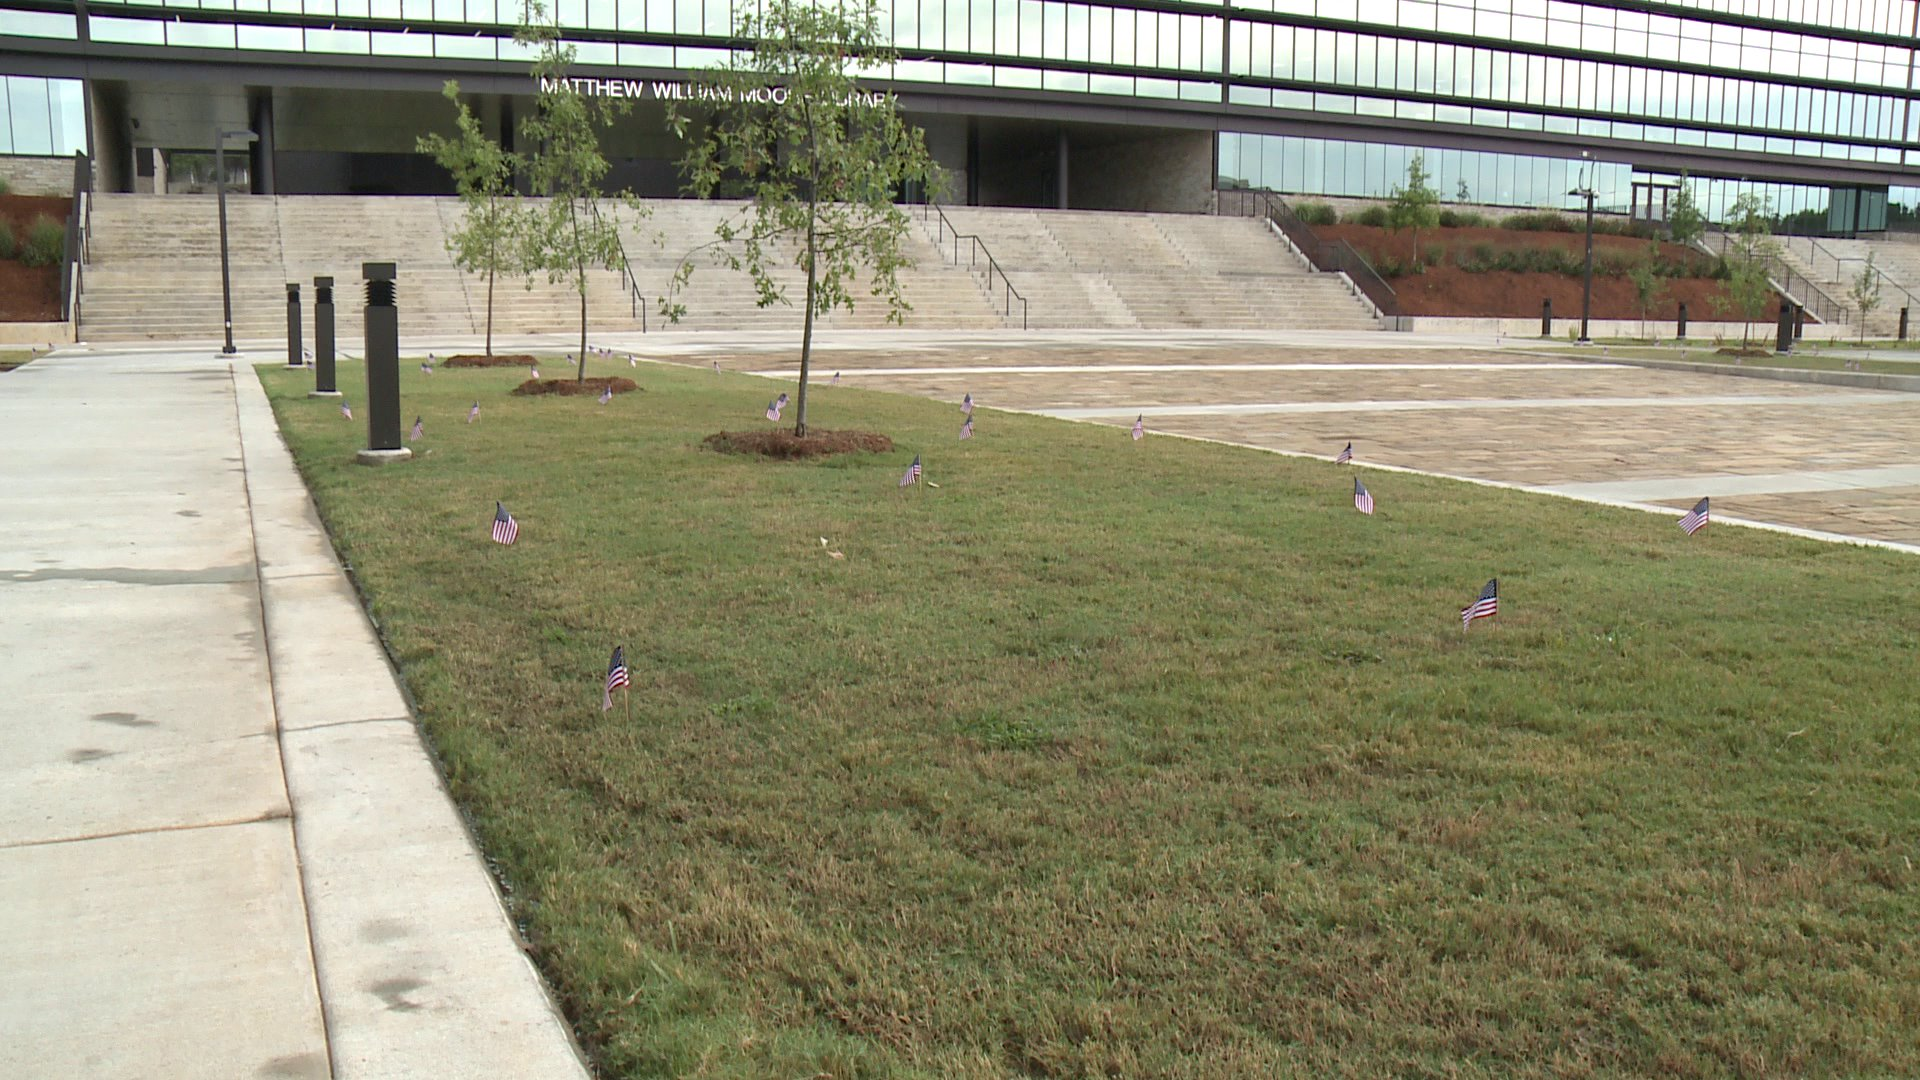 U.S. flags were placed in the courtyard areas at Fayetteville High School in memory of the lives lost and changed on 9/11.